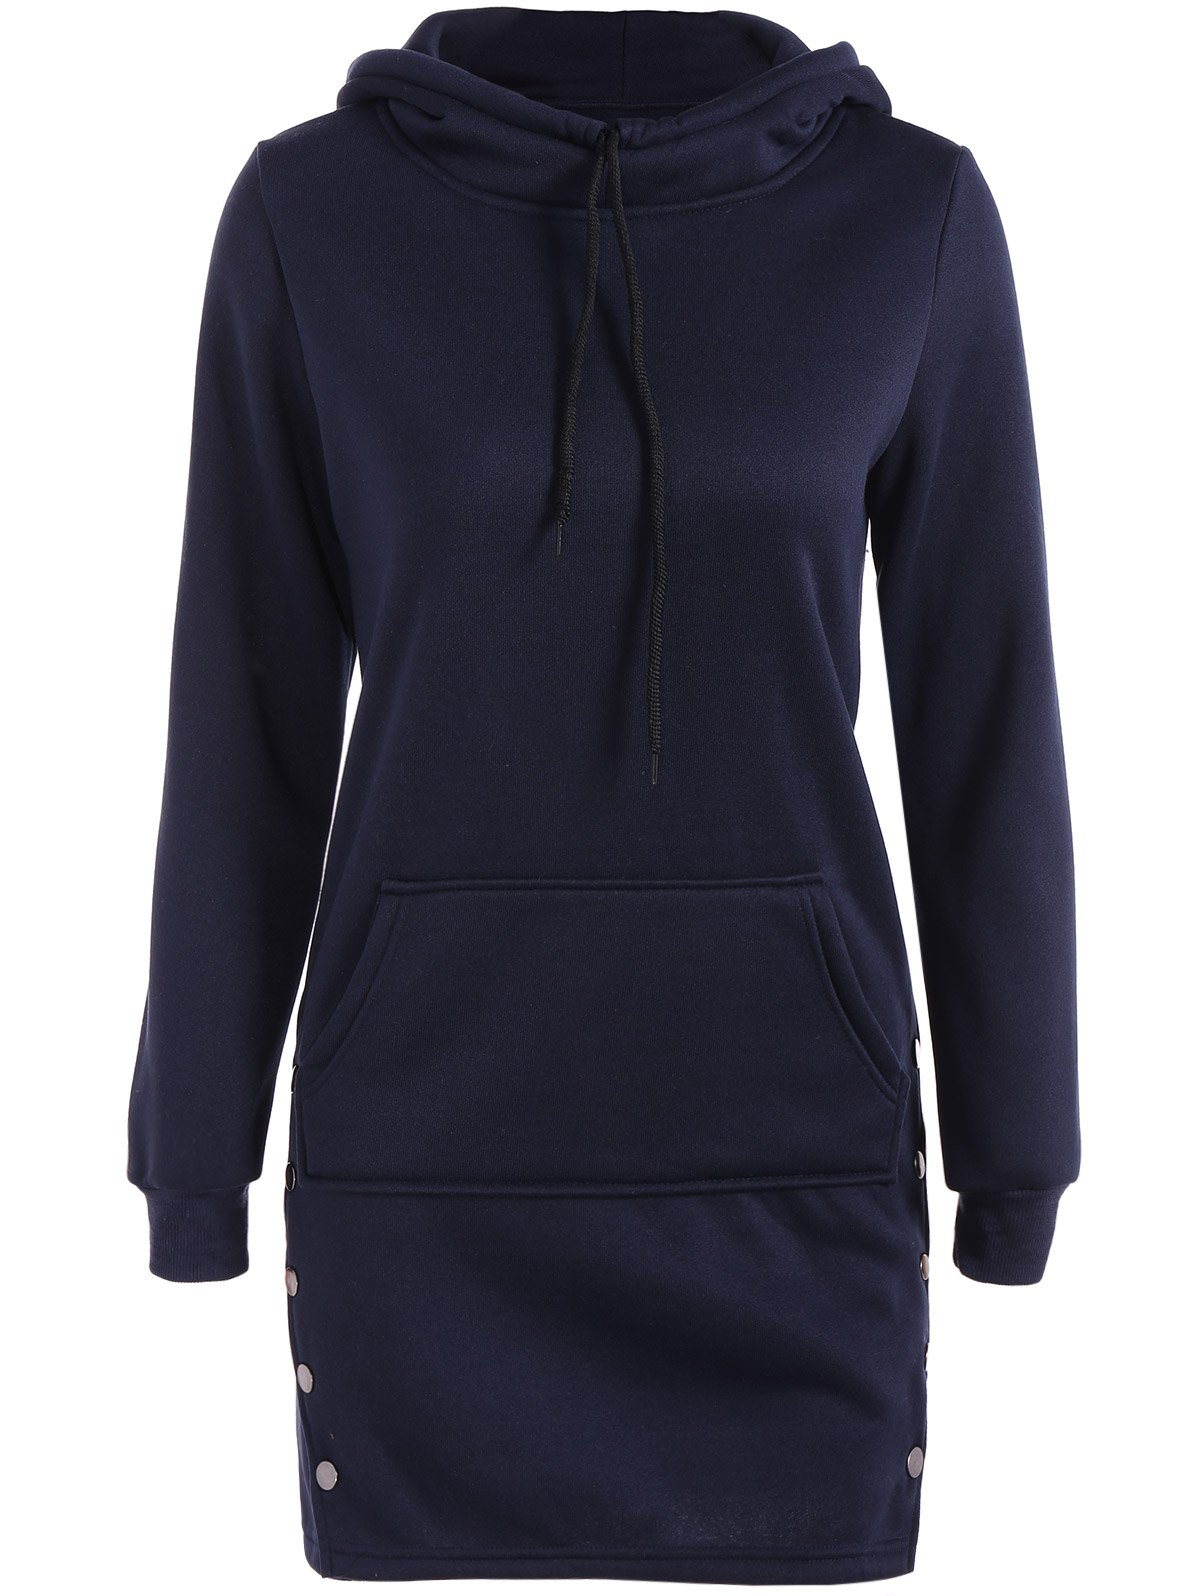 Kangaroo Pocket Button Long HoodieWomen<br><br><br>Size: M<br>Color: PURPLISH BLUE